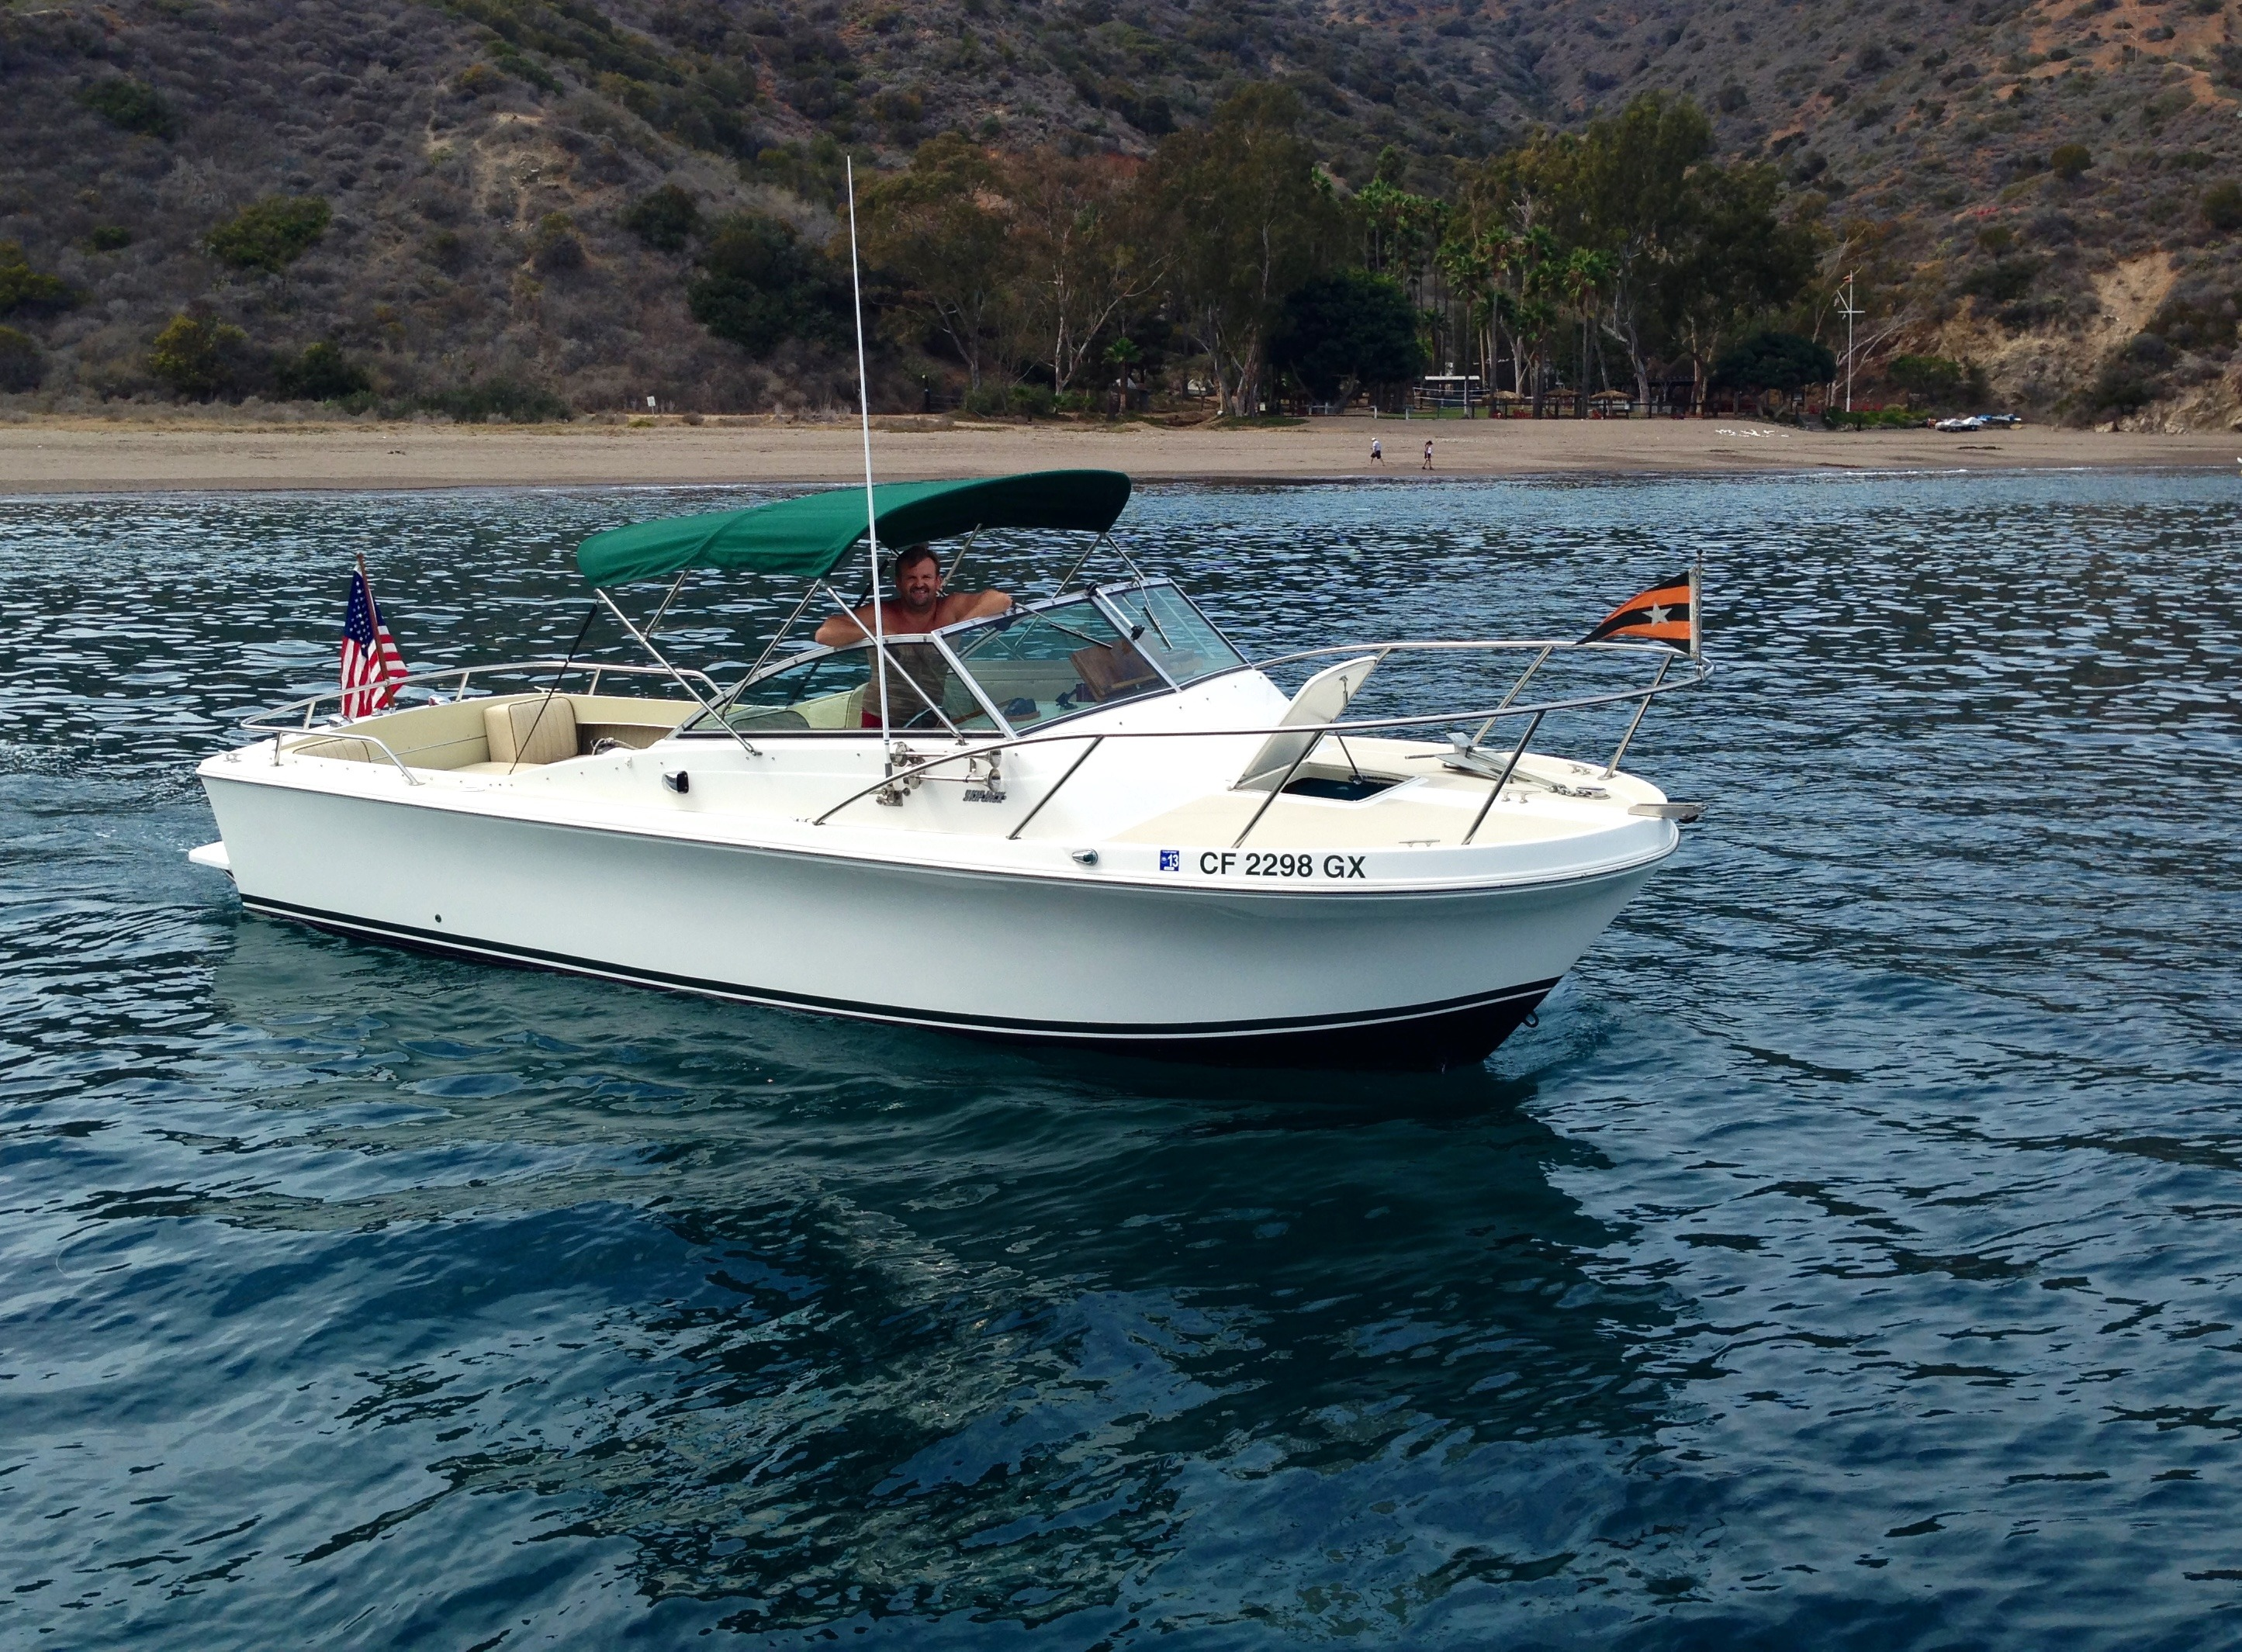 for in kingdom co cruiser sale cabins boats essex of hq cabin image marina parker united